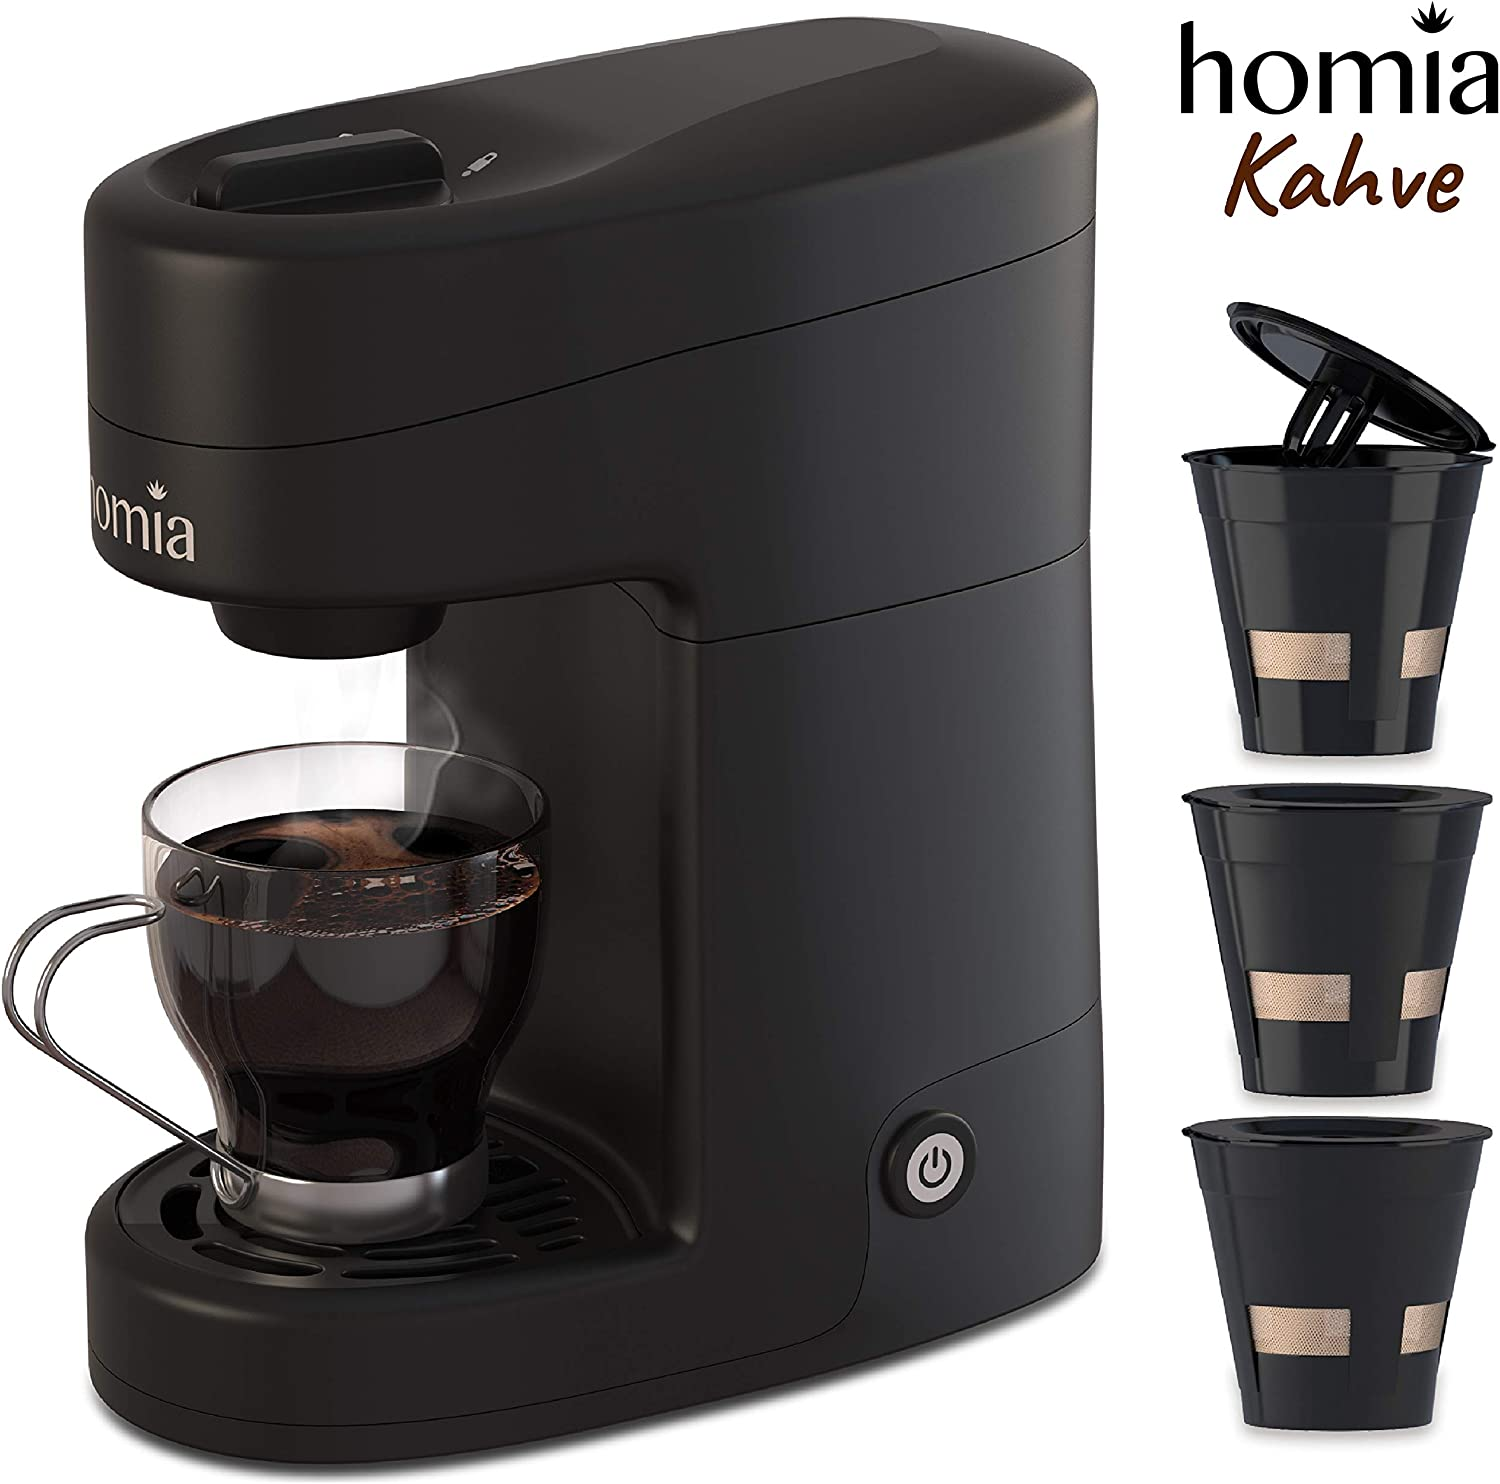 1 Cup Pod Coffee Maker Black 8 oz. Capacity